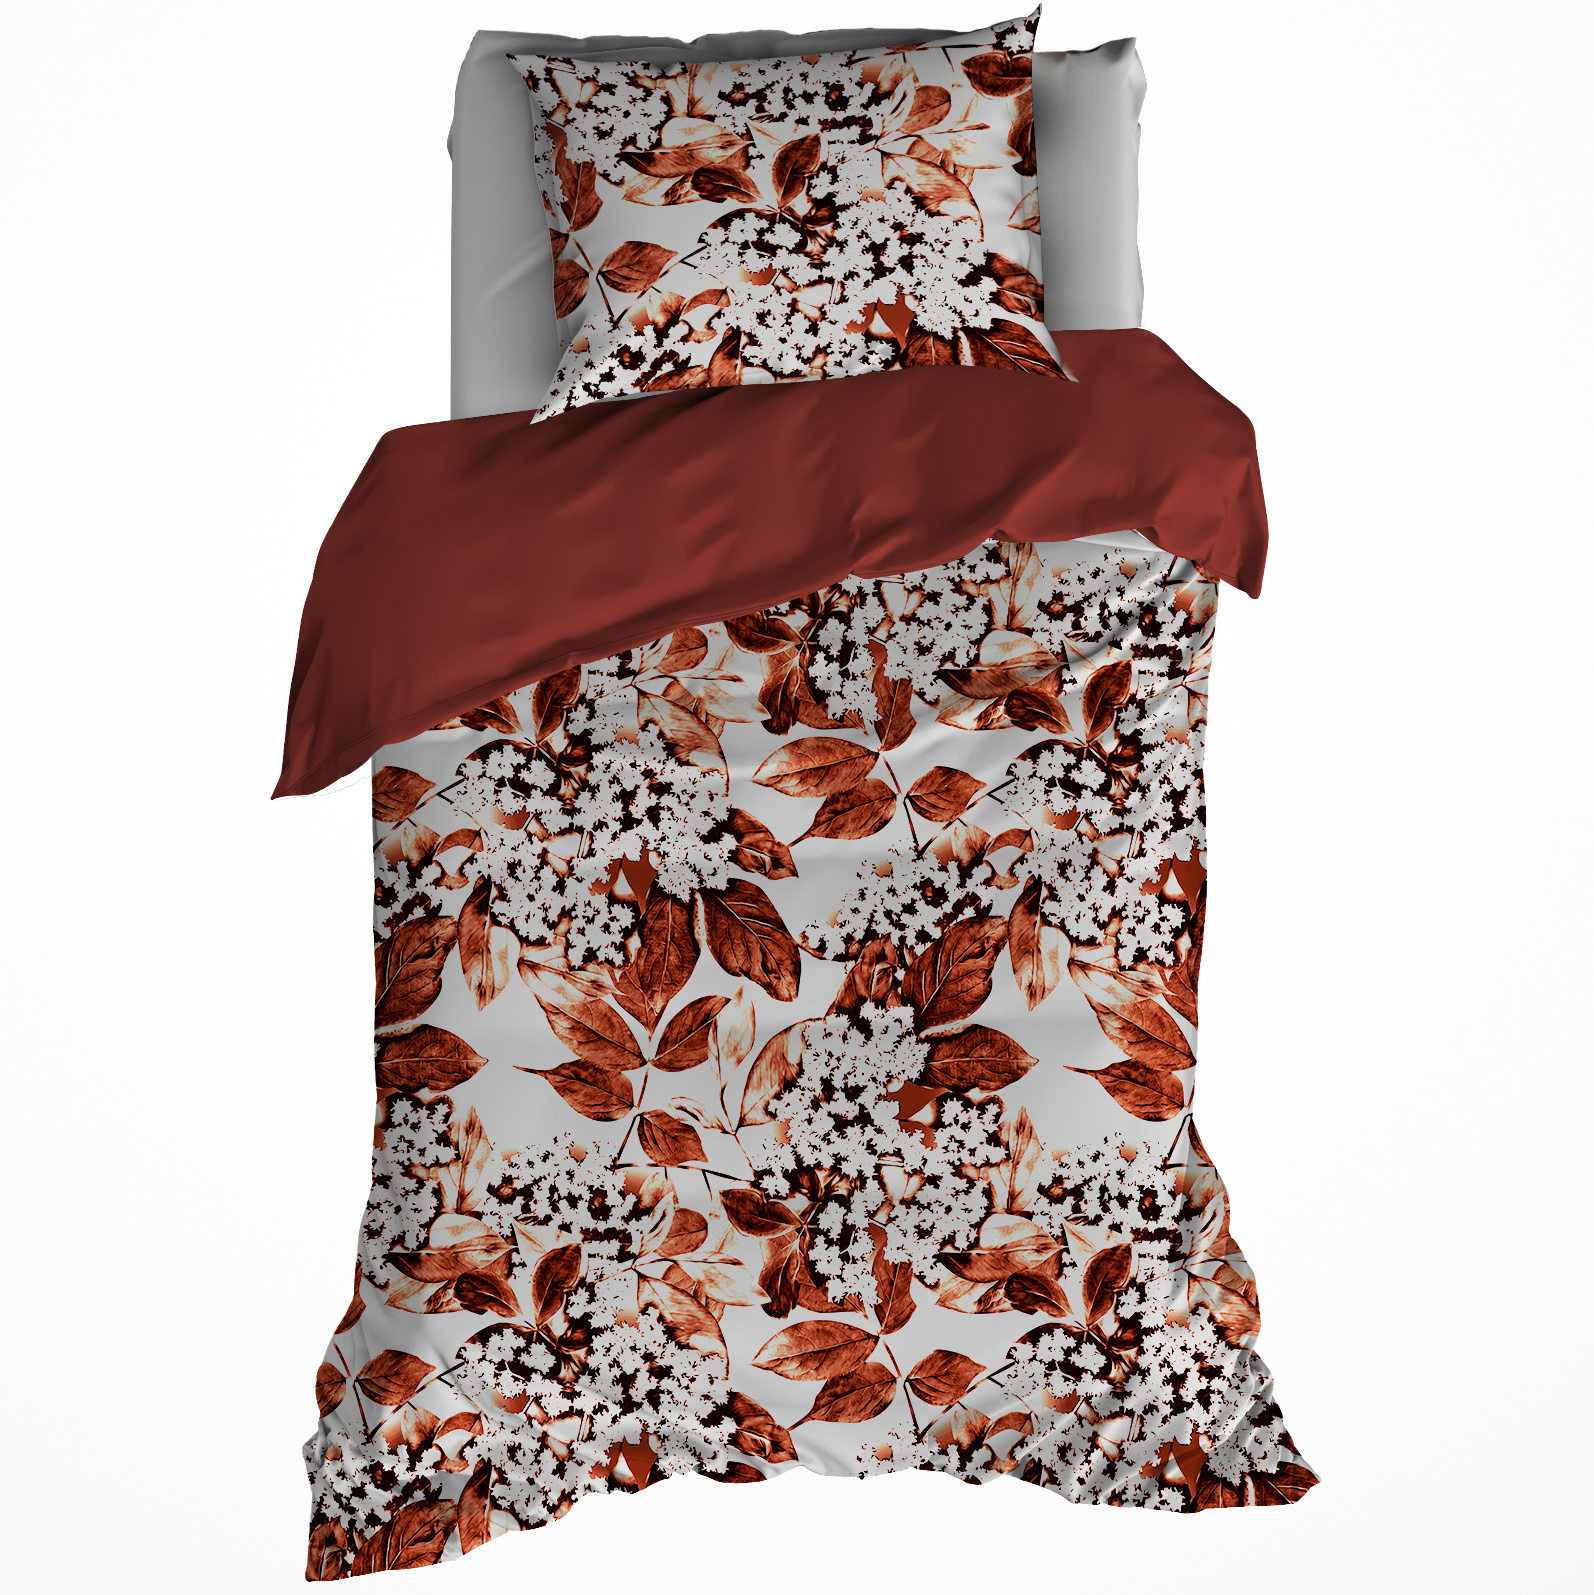 Dwl Duvet Cover Mimulus 140x220 60x70 Spicy Red 100 Cotton Flannel Simbashop Nl